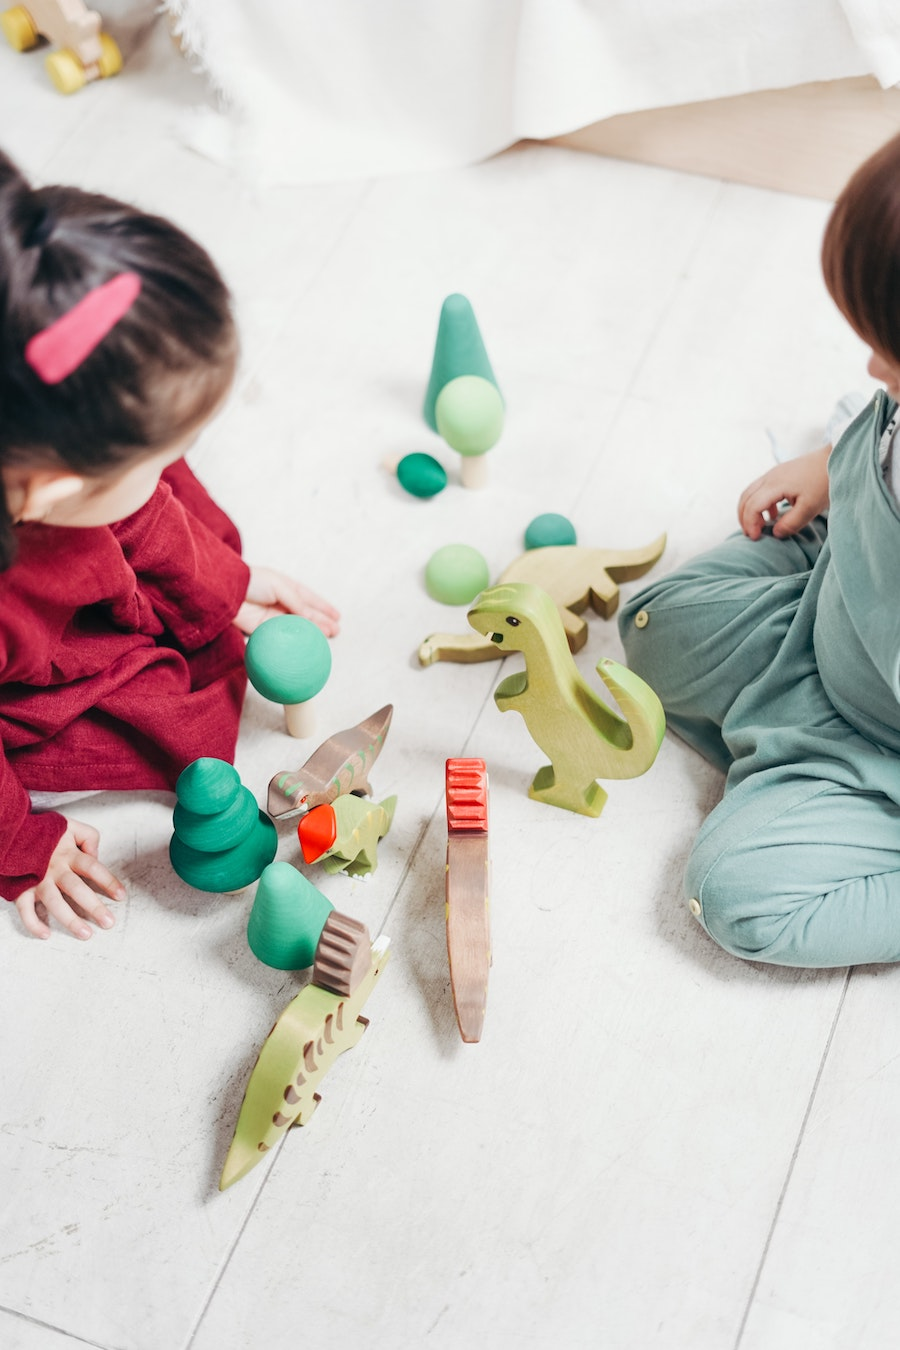 toddlers exploring their bodies